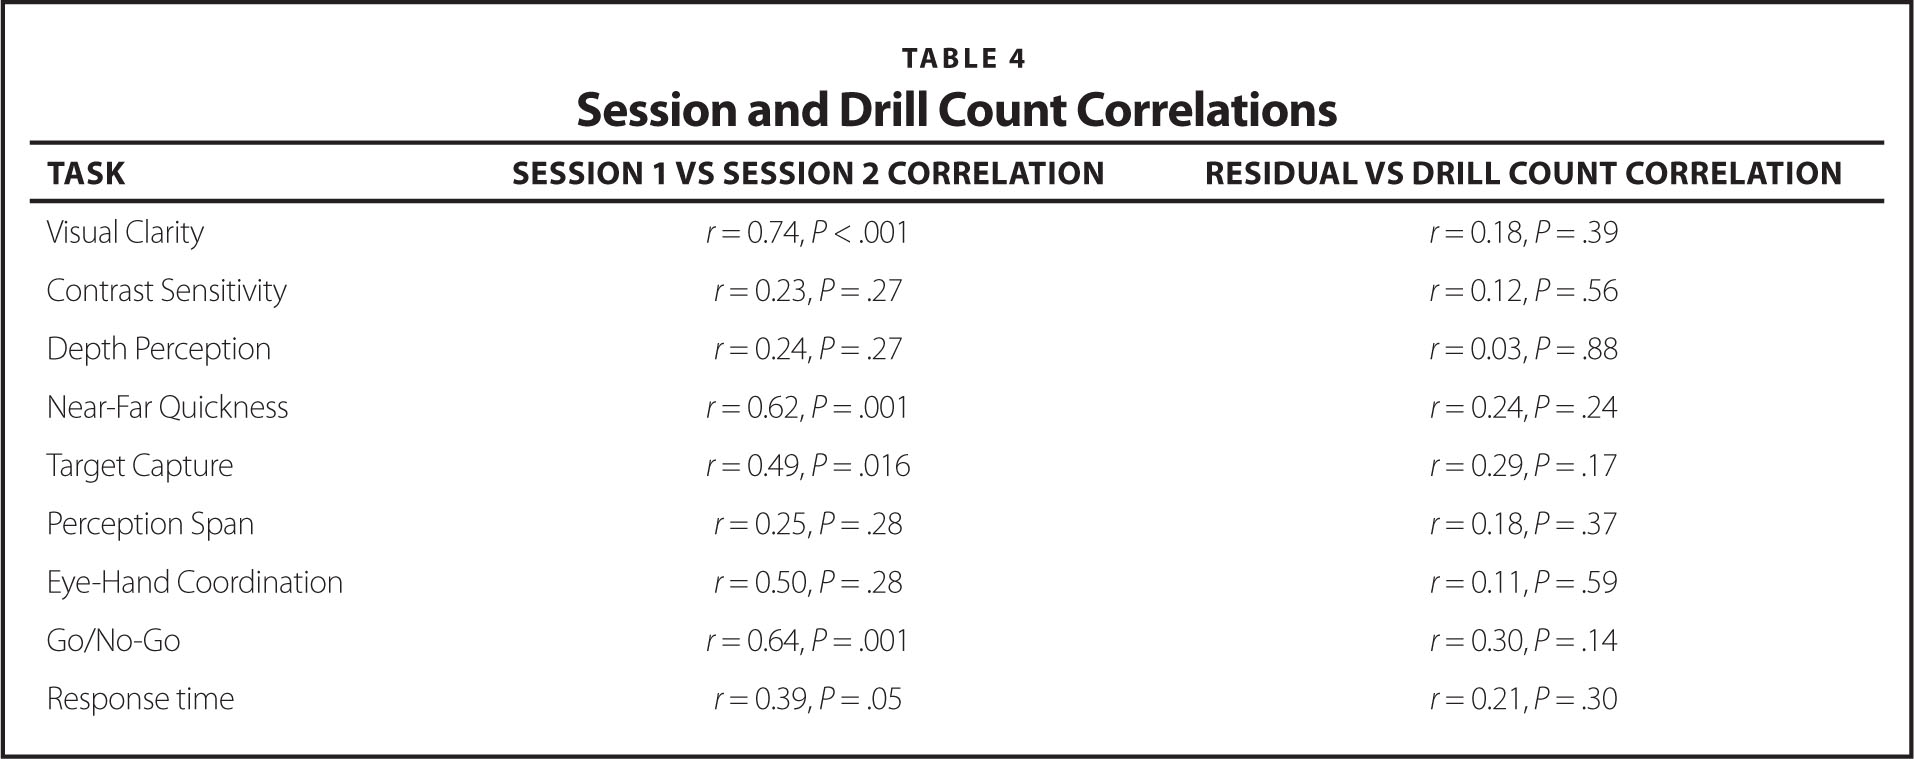 Session and Drill Count Correlations